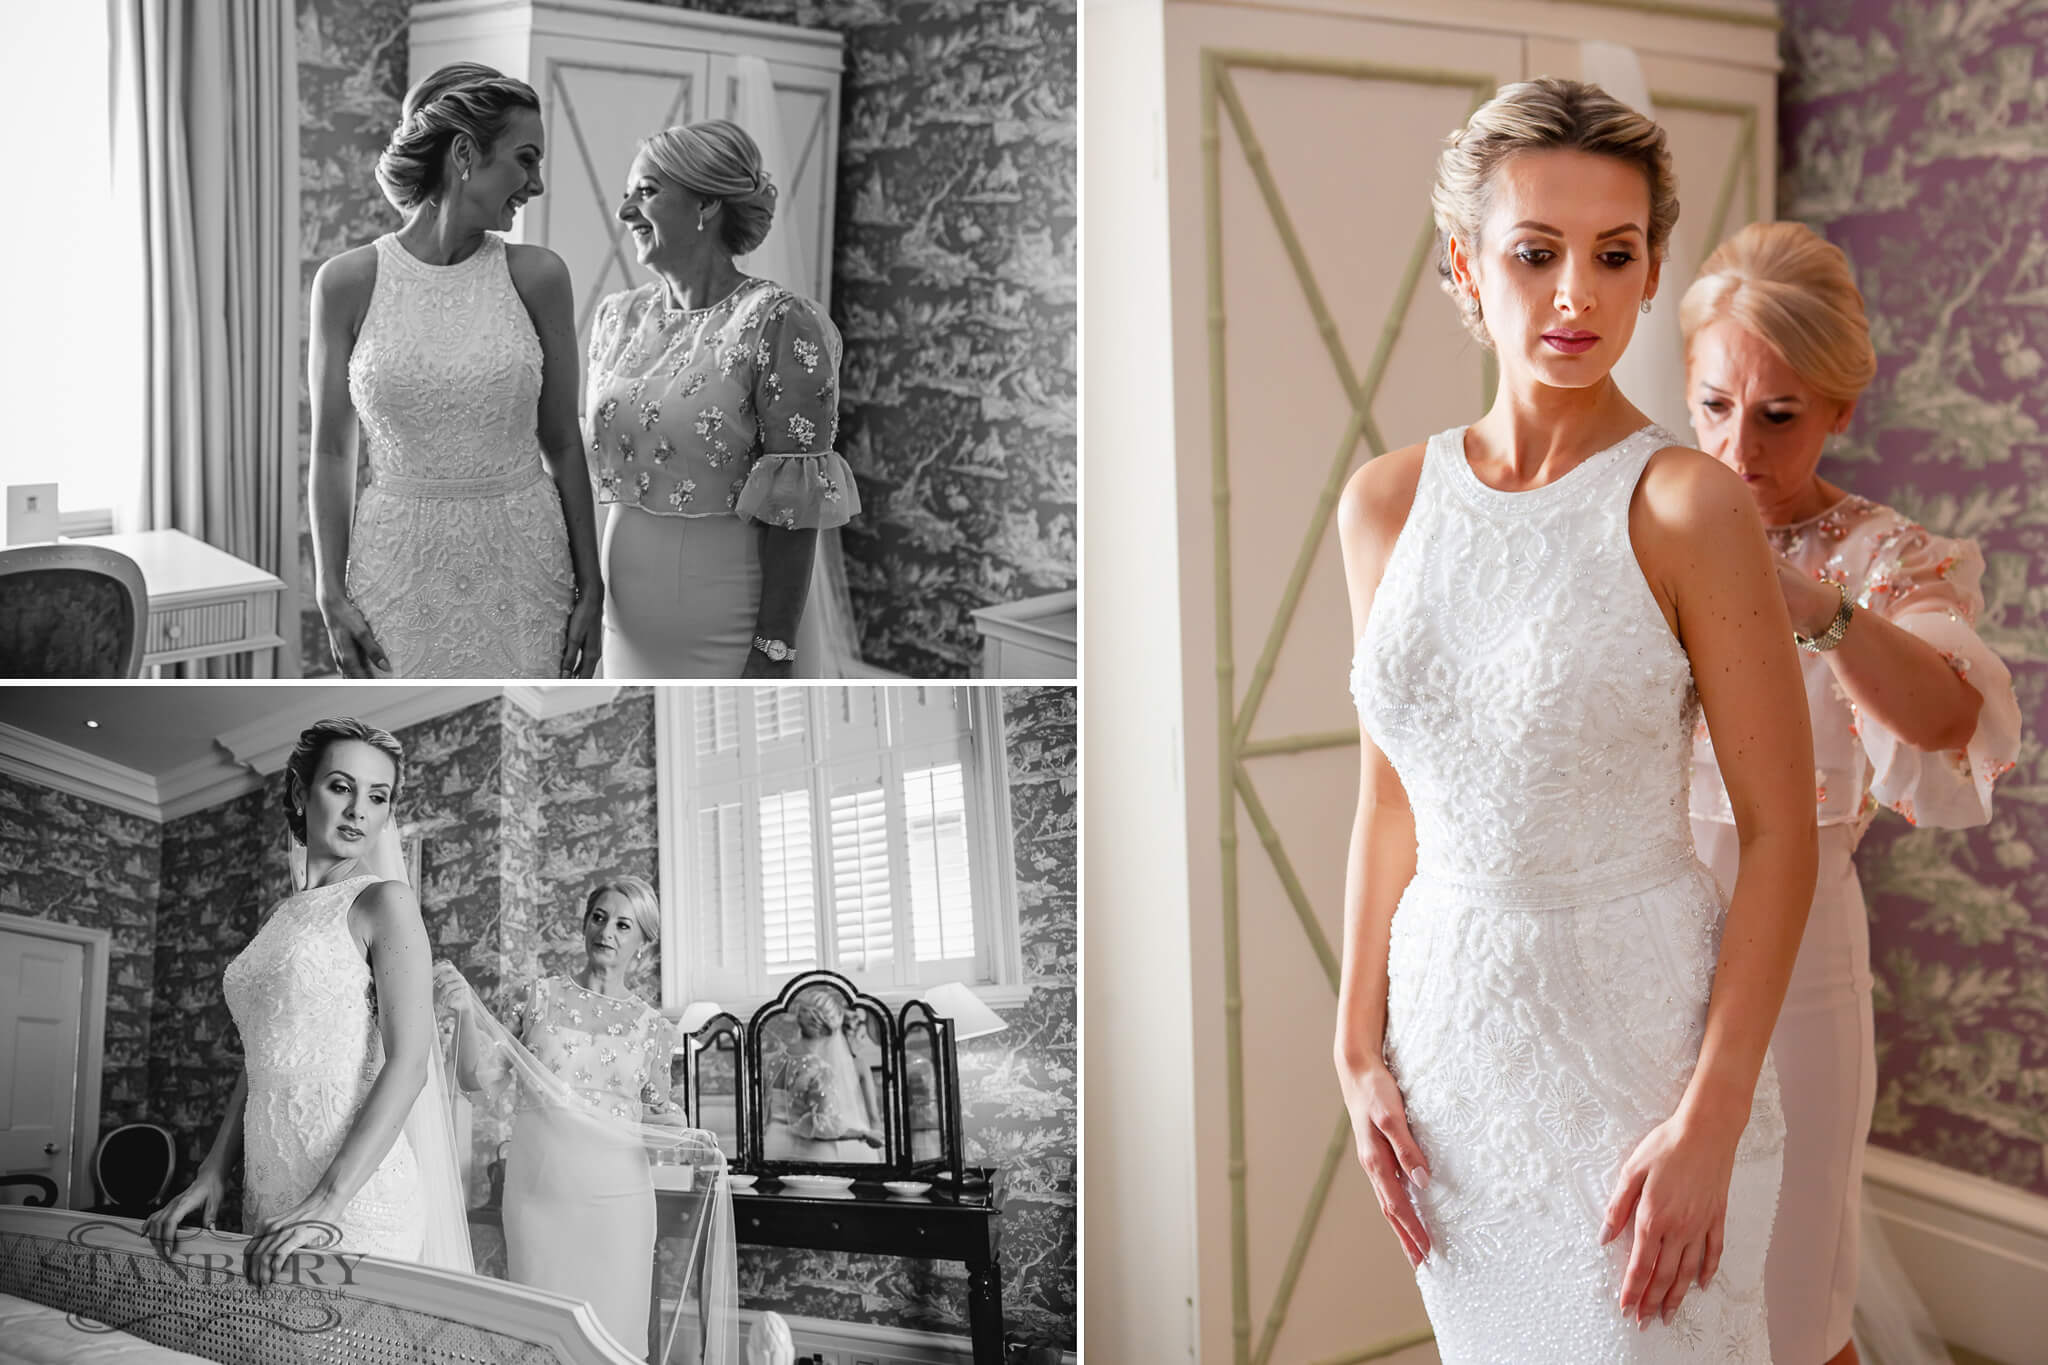 knowsley-hall-wedding-stanbury-photography-006